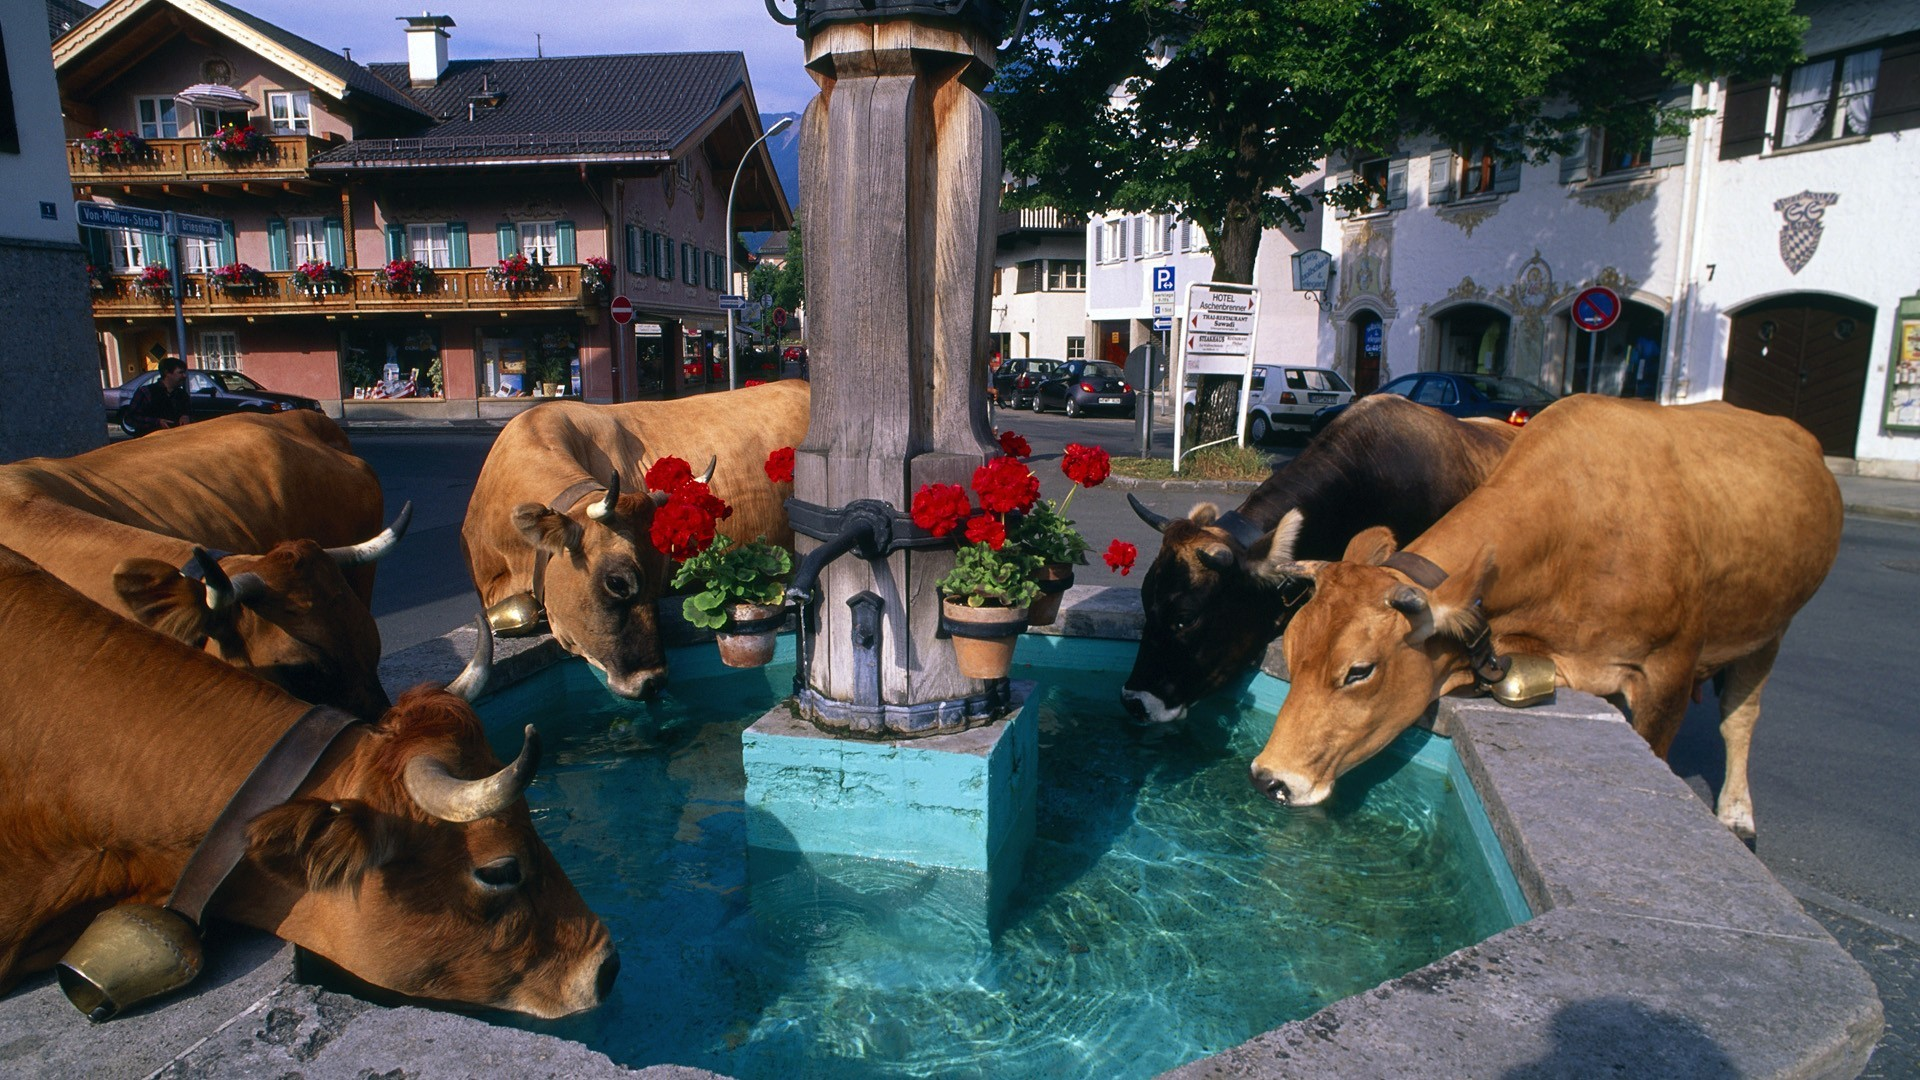 Cows fountain HD Wallpaper